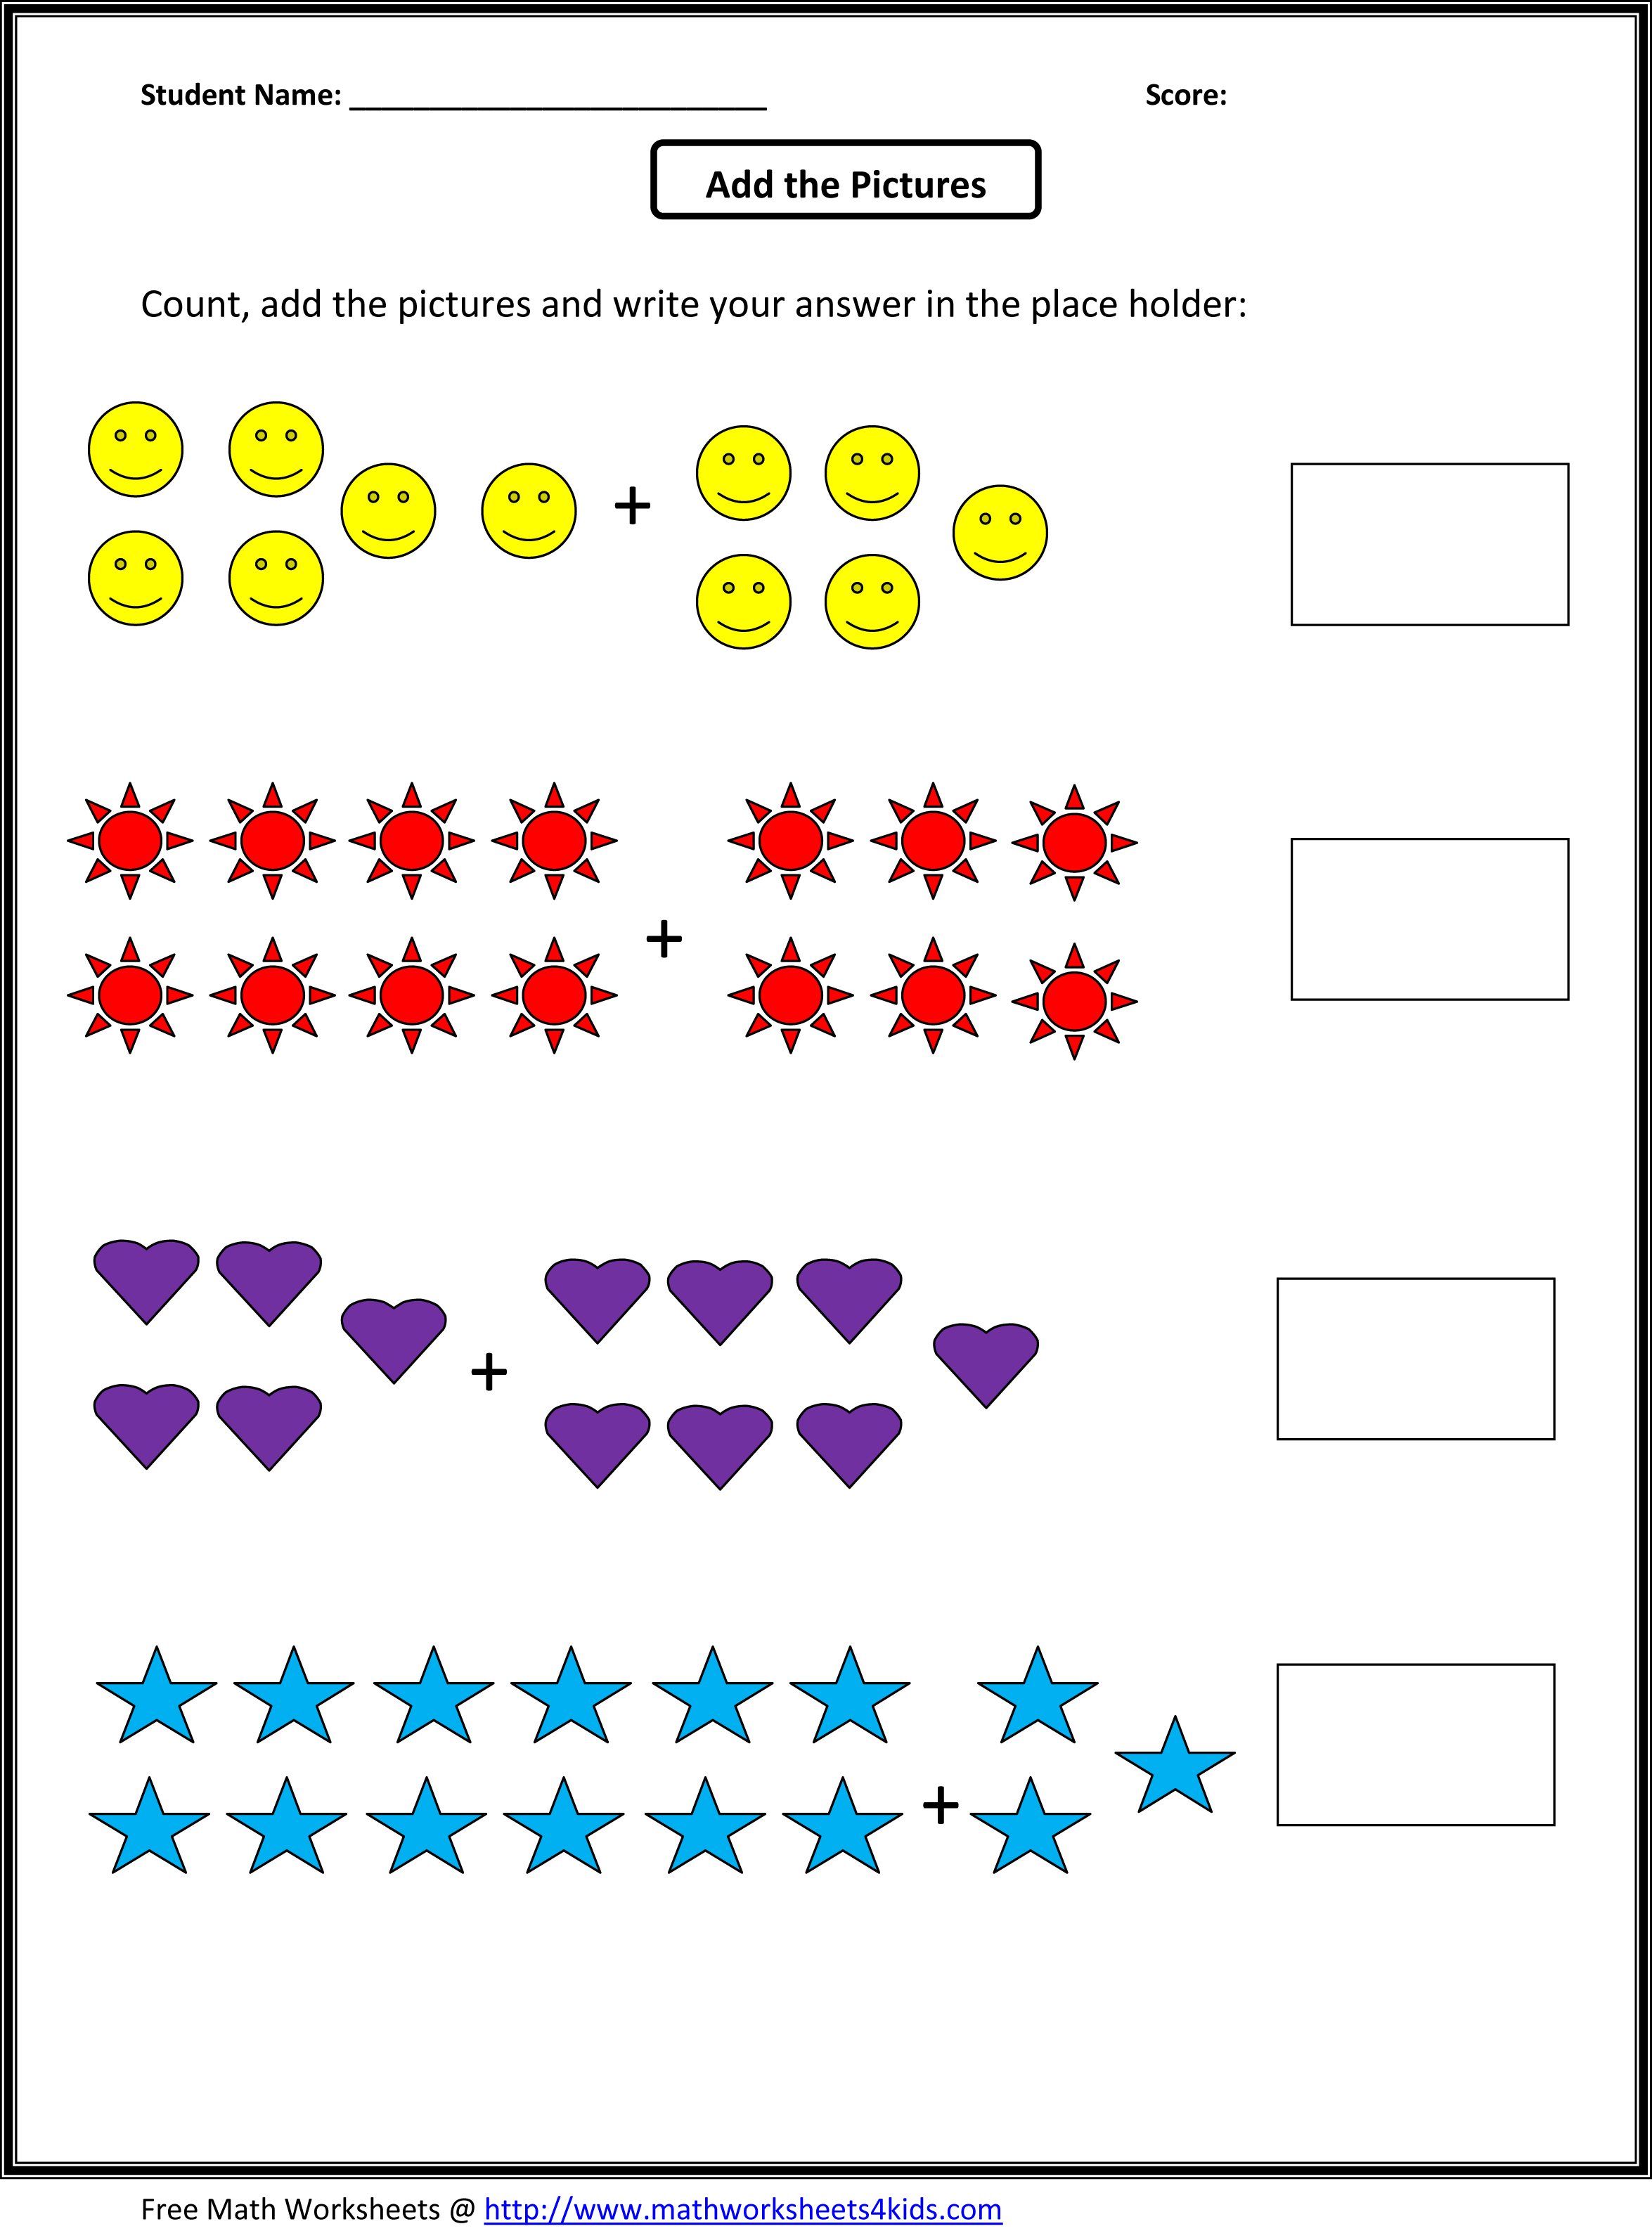 Weirdmailus  Surprising Grade  Maths Worksheet  Reocurent With Entrancing Math Worksheets For St Grade Free  Reocurent With Nice Free Kid Worksheets Also Identify Nouns In A Sentence Worksheet In Addition French Subjunctive Worksheet And Free Colouring Worksheets As Well As Fast Facts Multiplication Worksheets Additionally Math Perimeter And Area Worksheets From Reocurentcom With Weirdmailus  Entrancing Grade  Maths Worksheet  Reocurent With Nice Math Worksheets For St Grade Free  Reocurent And Surprising Free Kid Worksheets Also Identify Nouns In A Sentence Worksheet In Addition French Subjunctive Worksheet From Reocurentcom